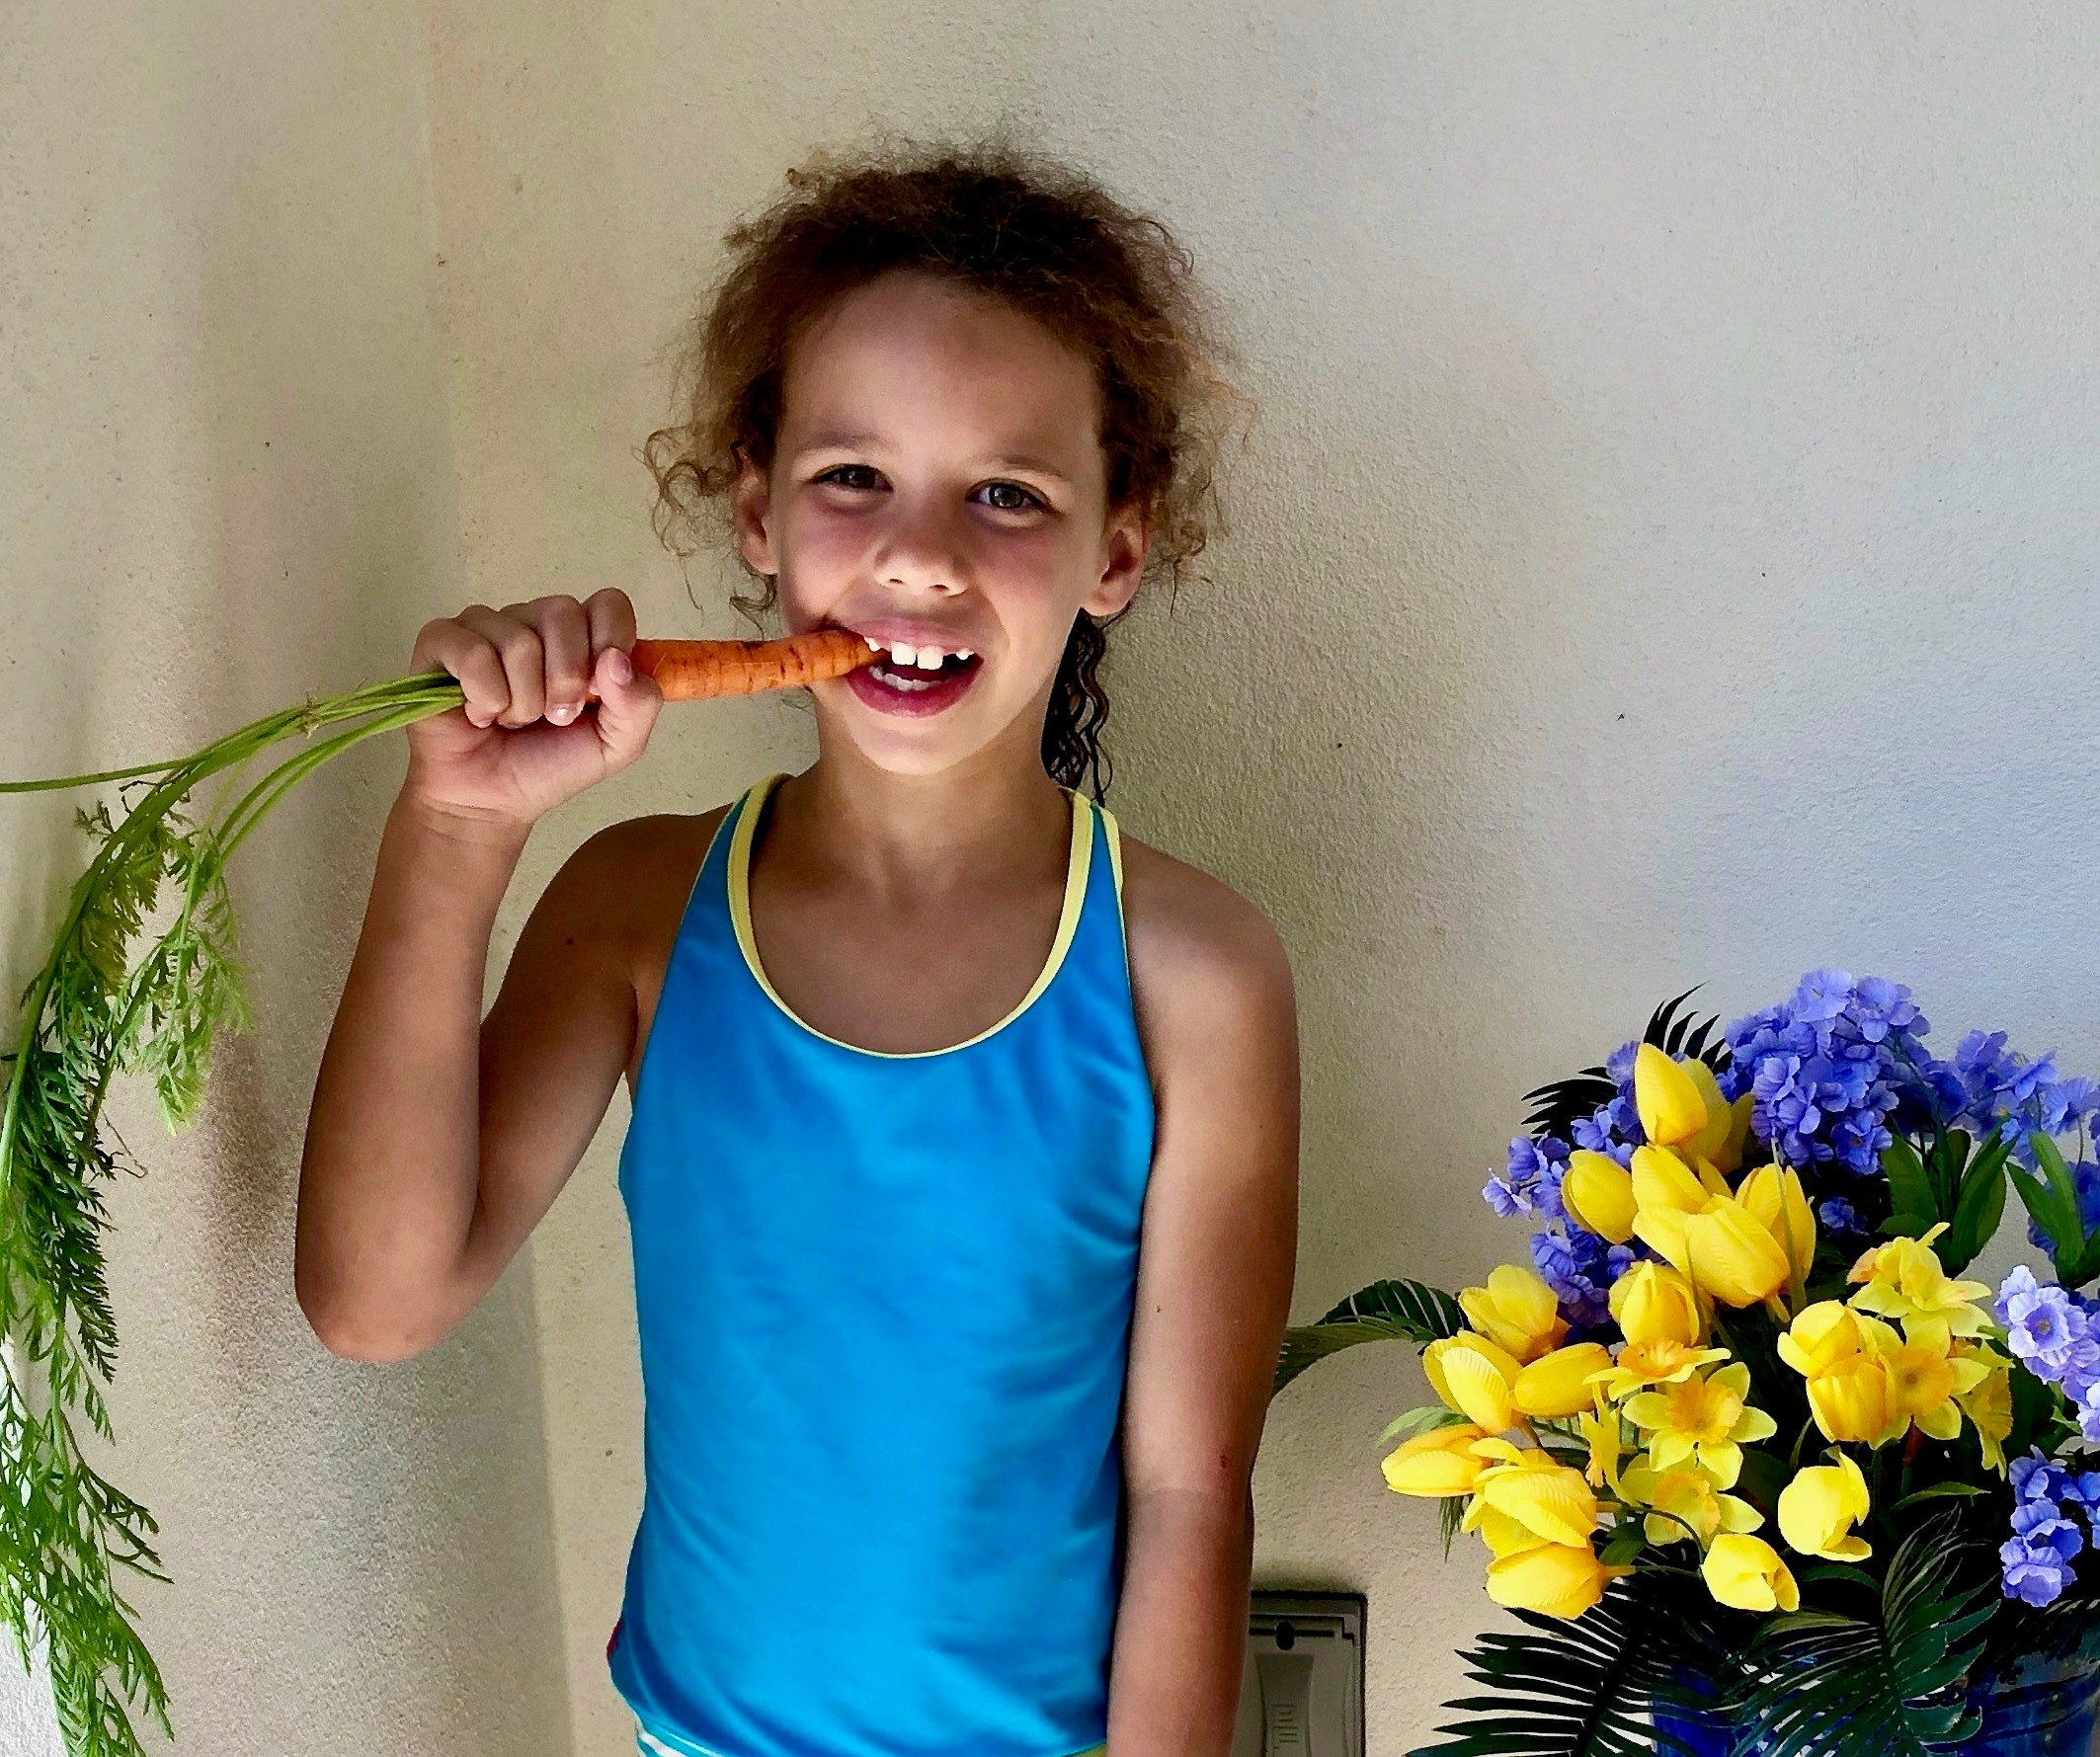 Girl eating a carrot.